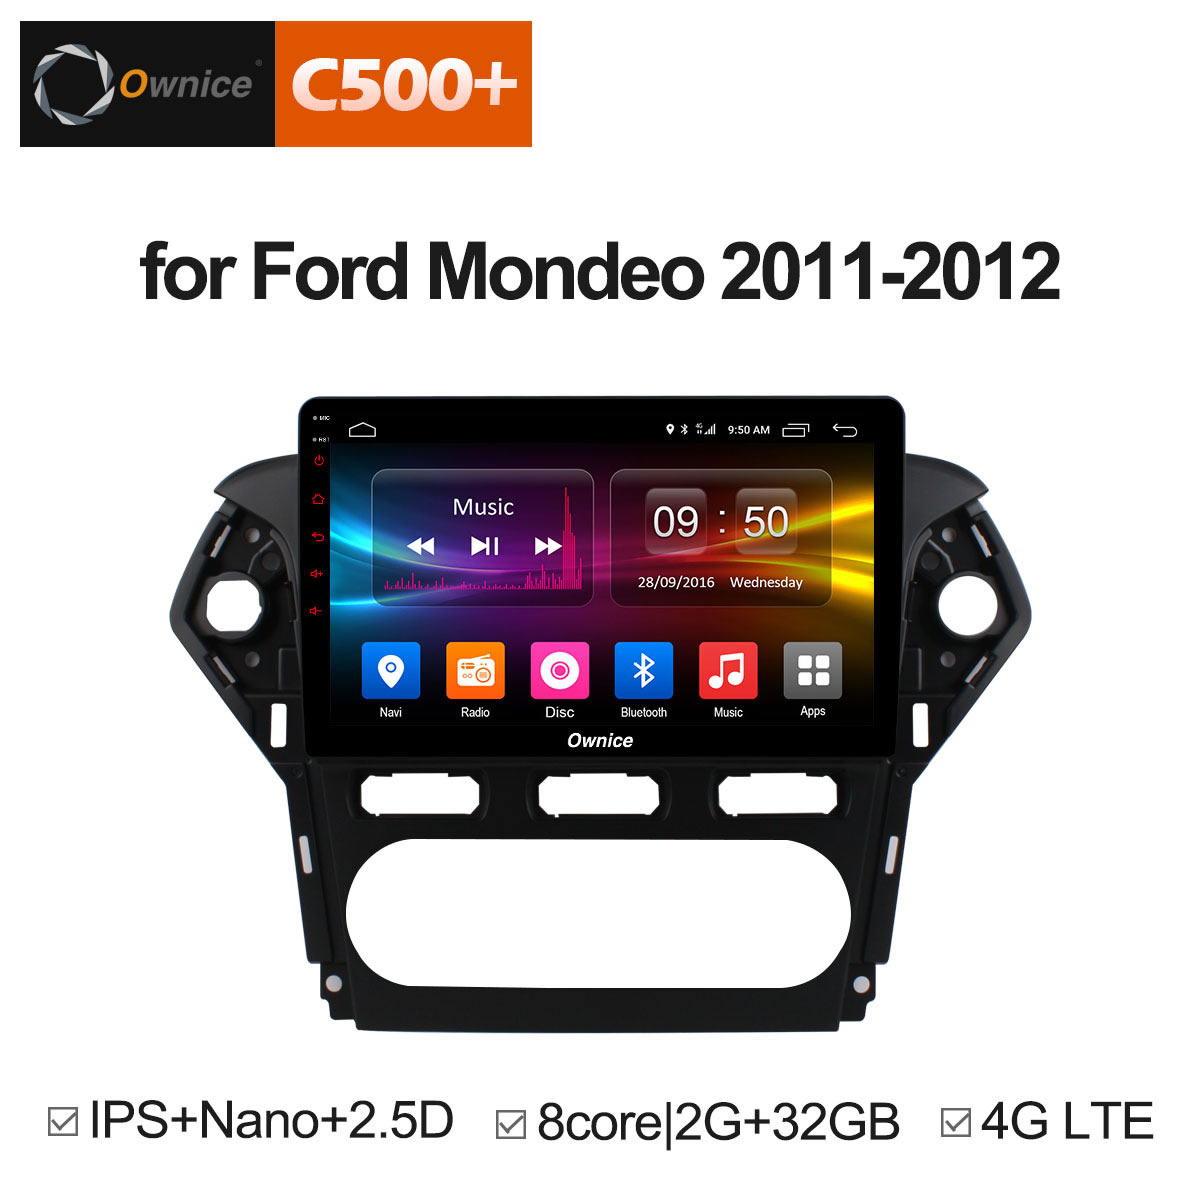 Ownice 10.1 C500+ G10 Octa Core Android 8.1 2GB RAM Car DVD GPS Navi Radio For Ford Mondeo 2011 - 2012 Headunit Stereo 4G LTE ownice c500 4g sim lte octa 8 core android 6 0 for kia ceed 2013 2015 car dvd player gps navi radio wifi 4g bt 2gb ram 32g rom